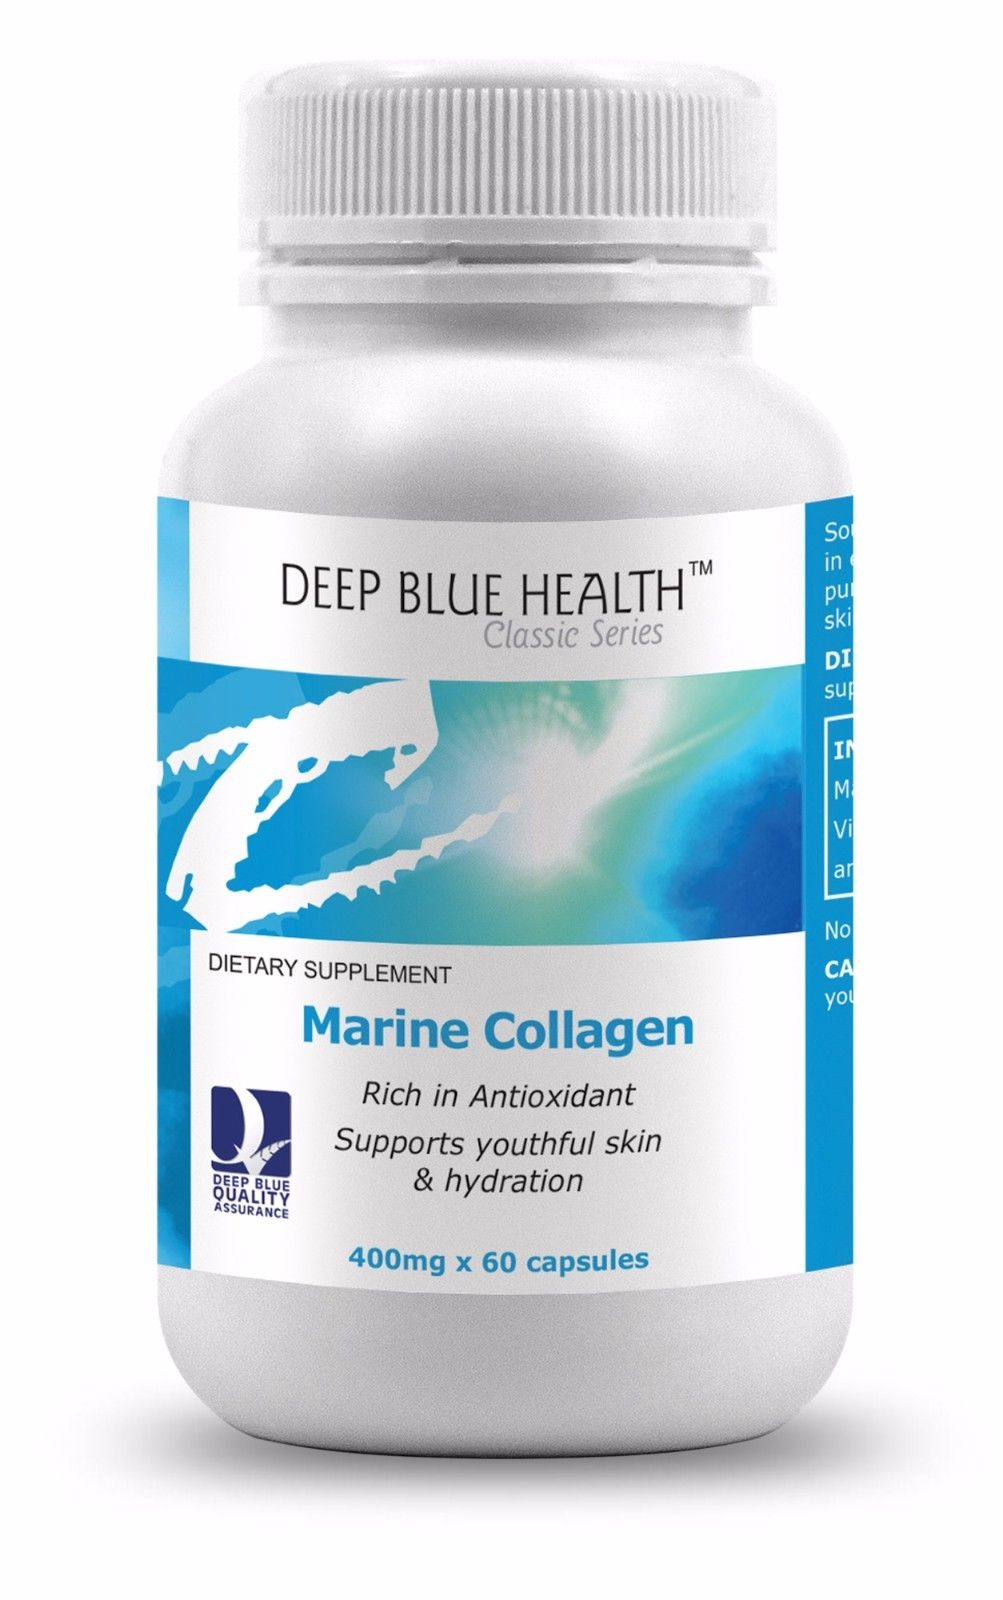 Marine Collagen 400mg x 60 soft caps